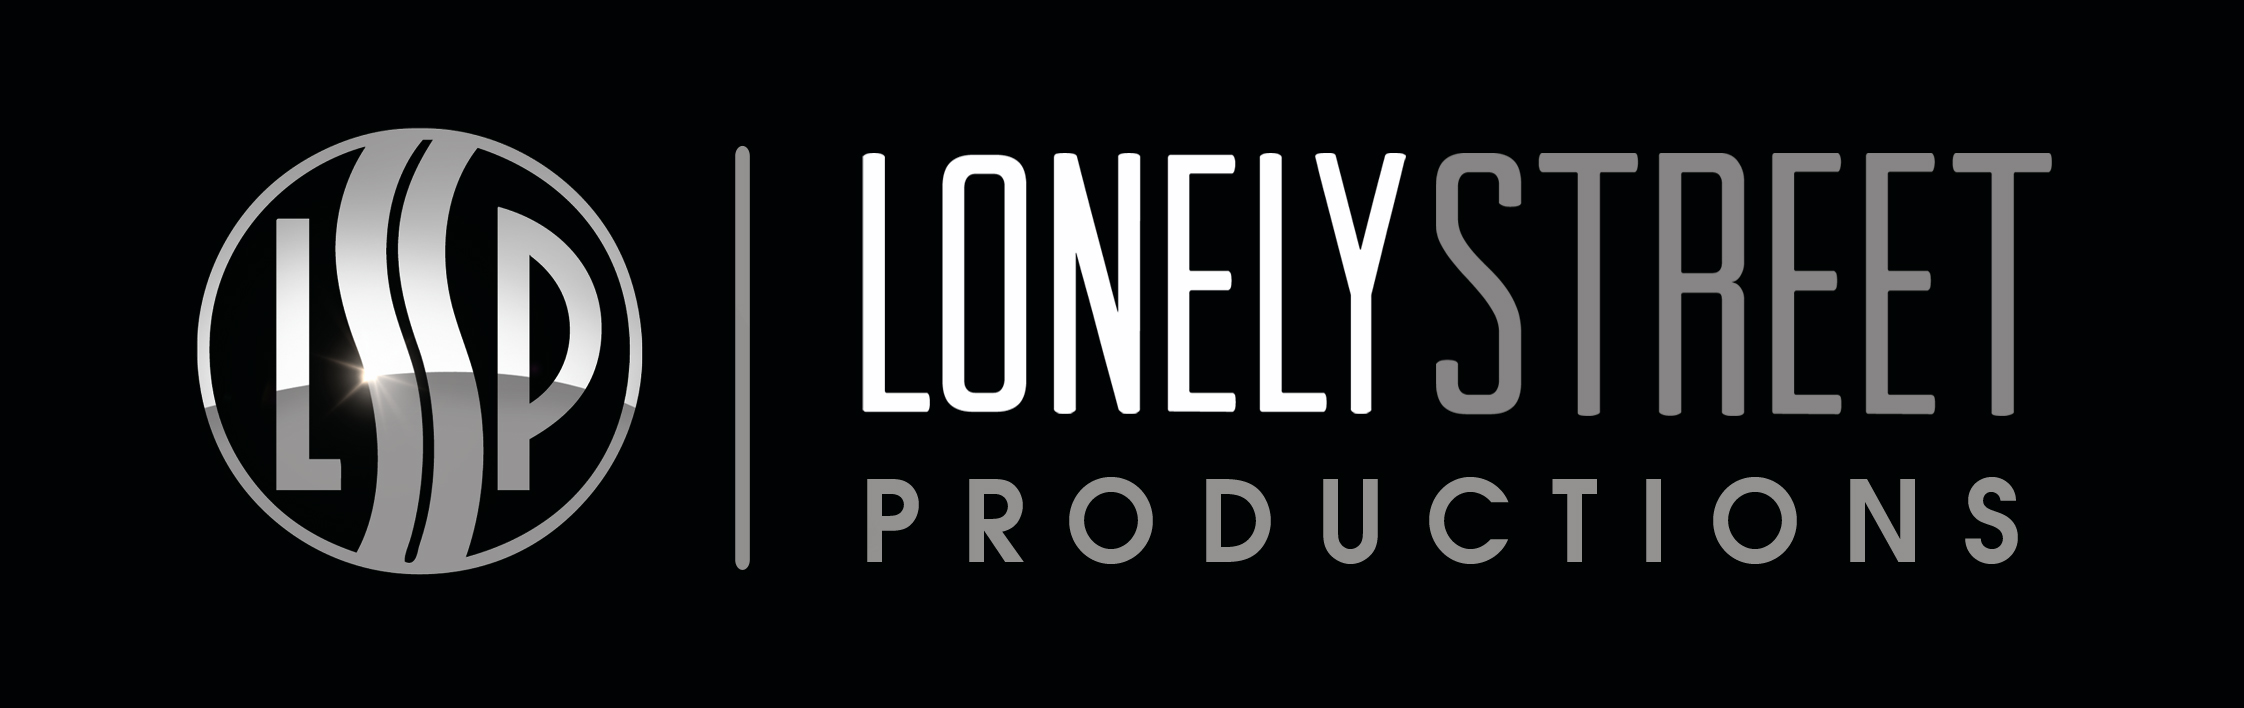 Find tickets from Lonely Street Productions